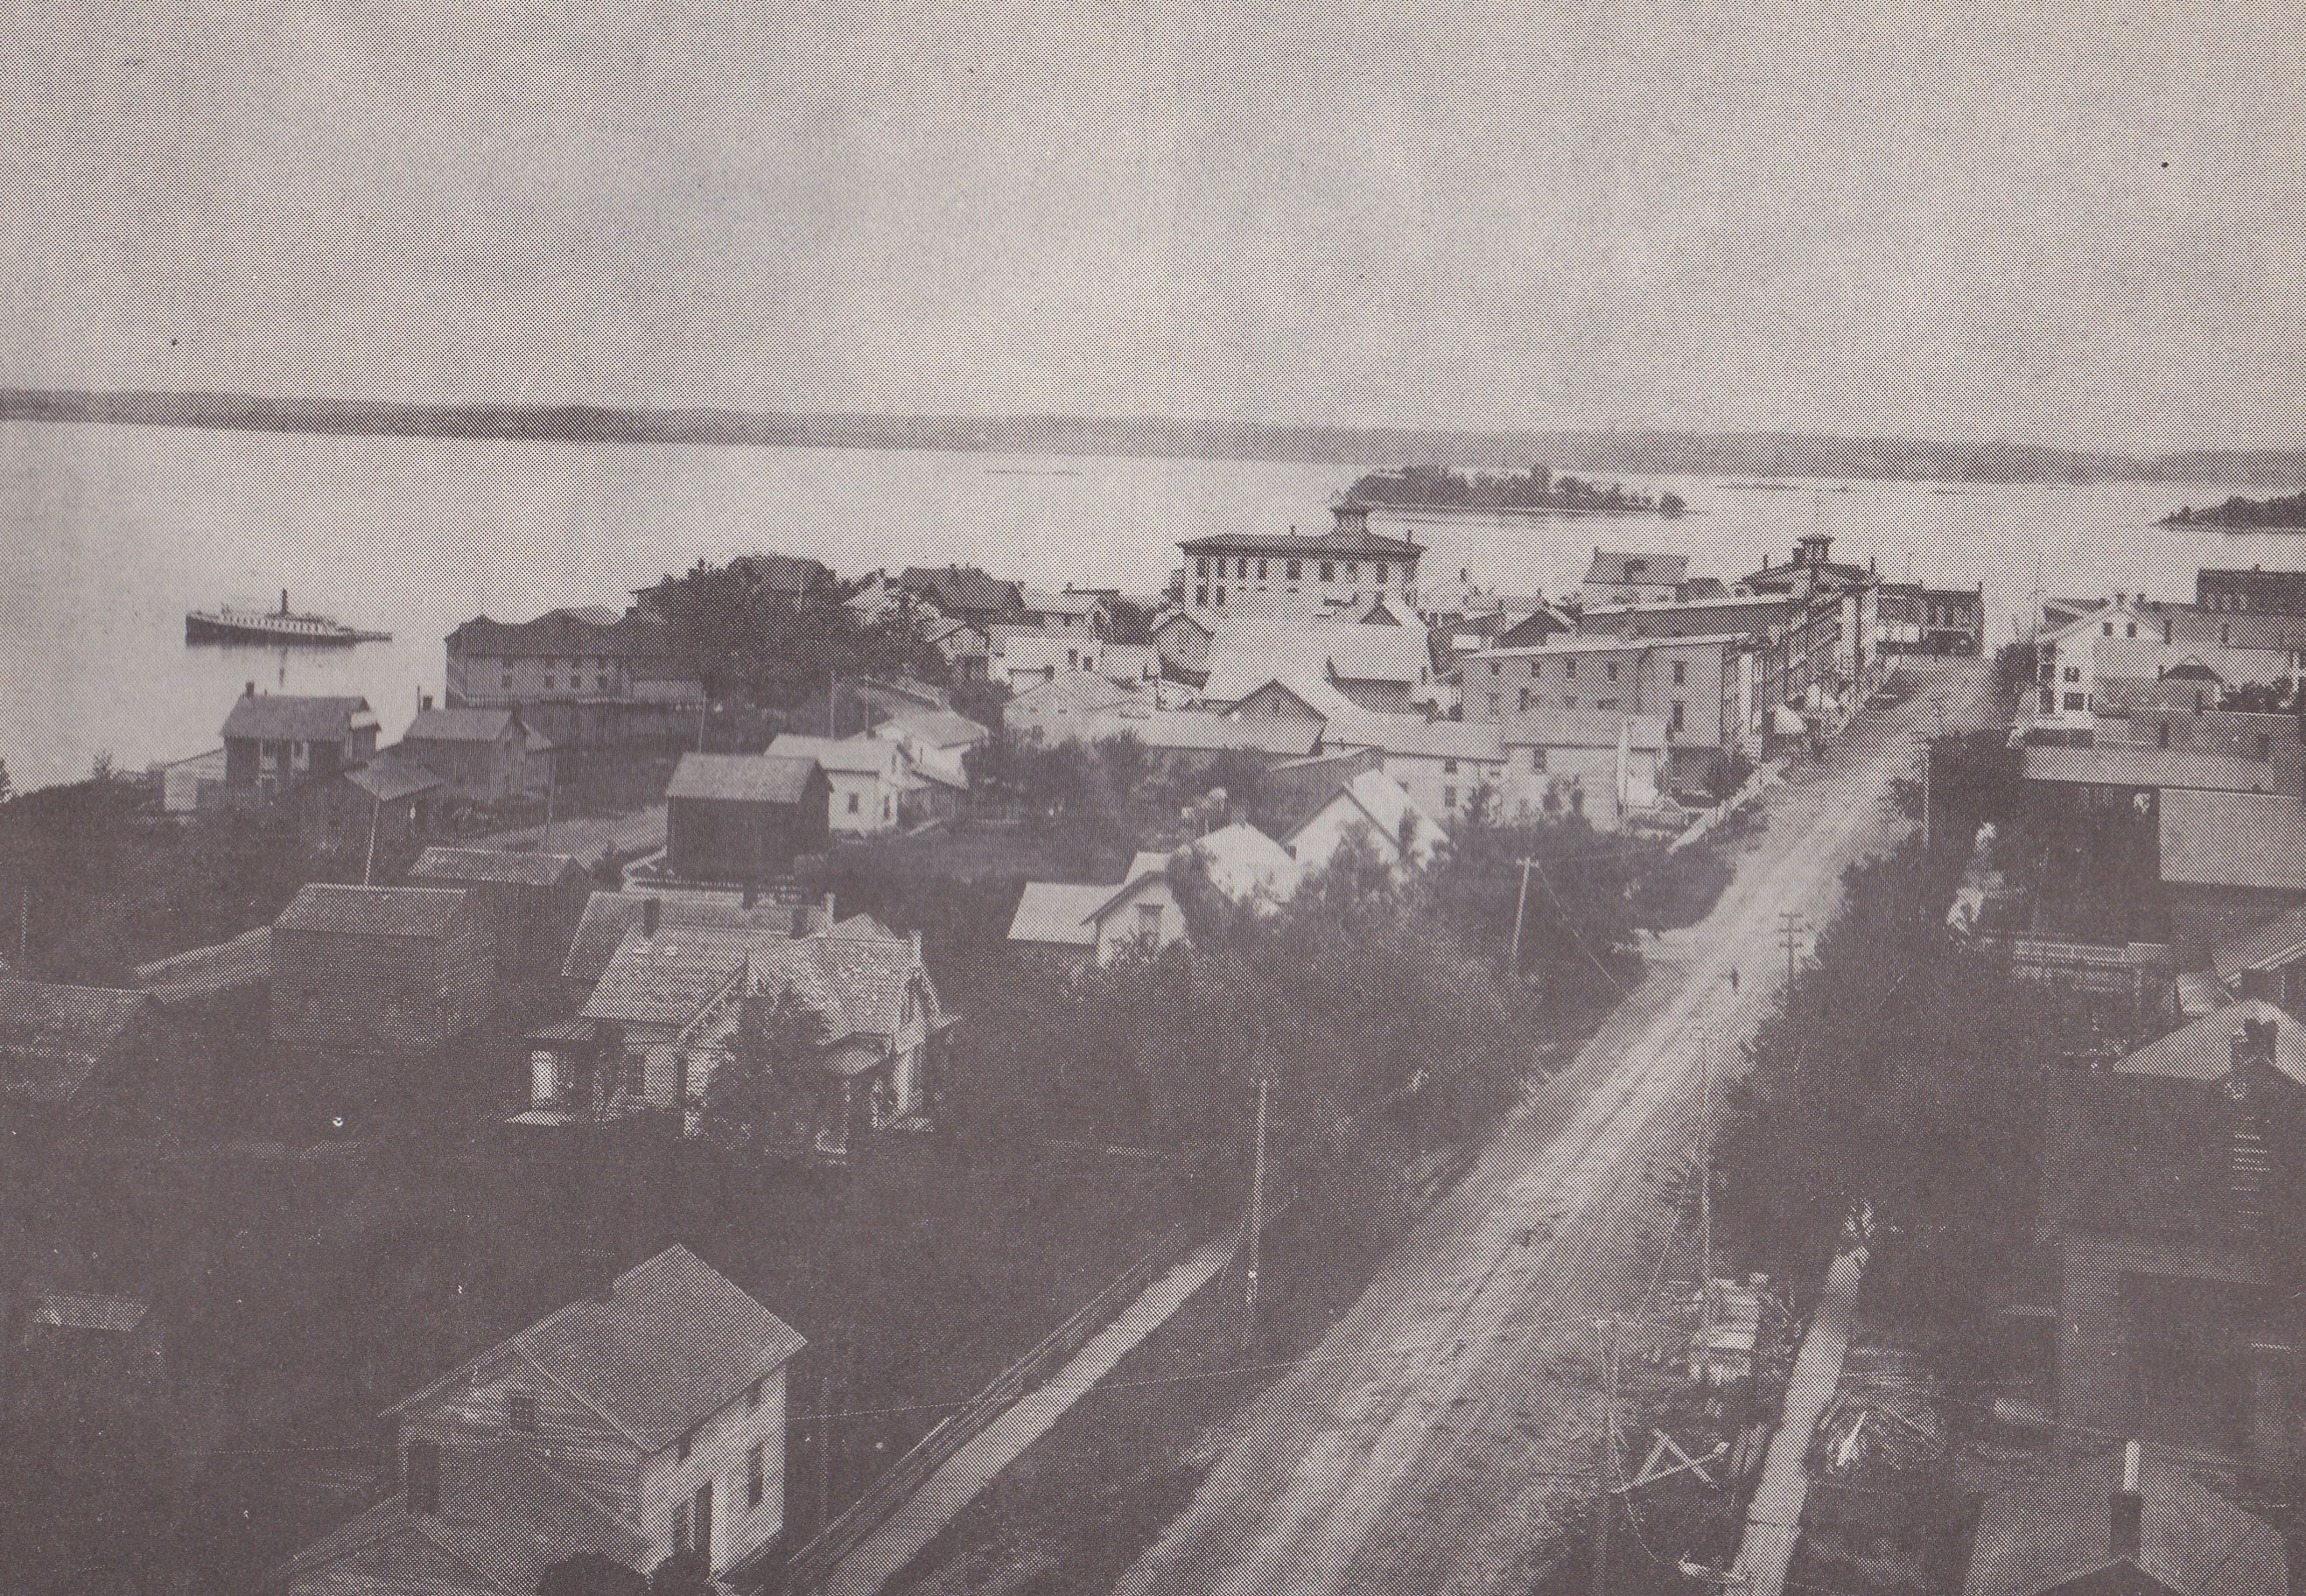 This Photo From 1889 Shows James St In Clayton Ny With Governor S Island In The Background Photo Taken From St Mary S Church B Thousand Islands Island Photo